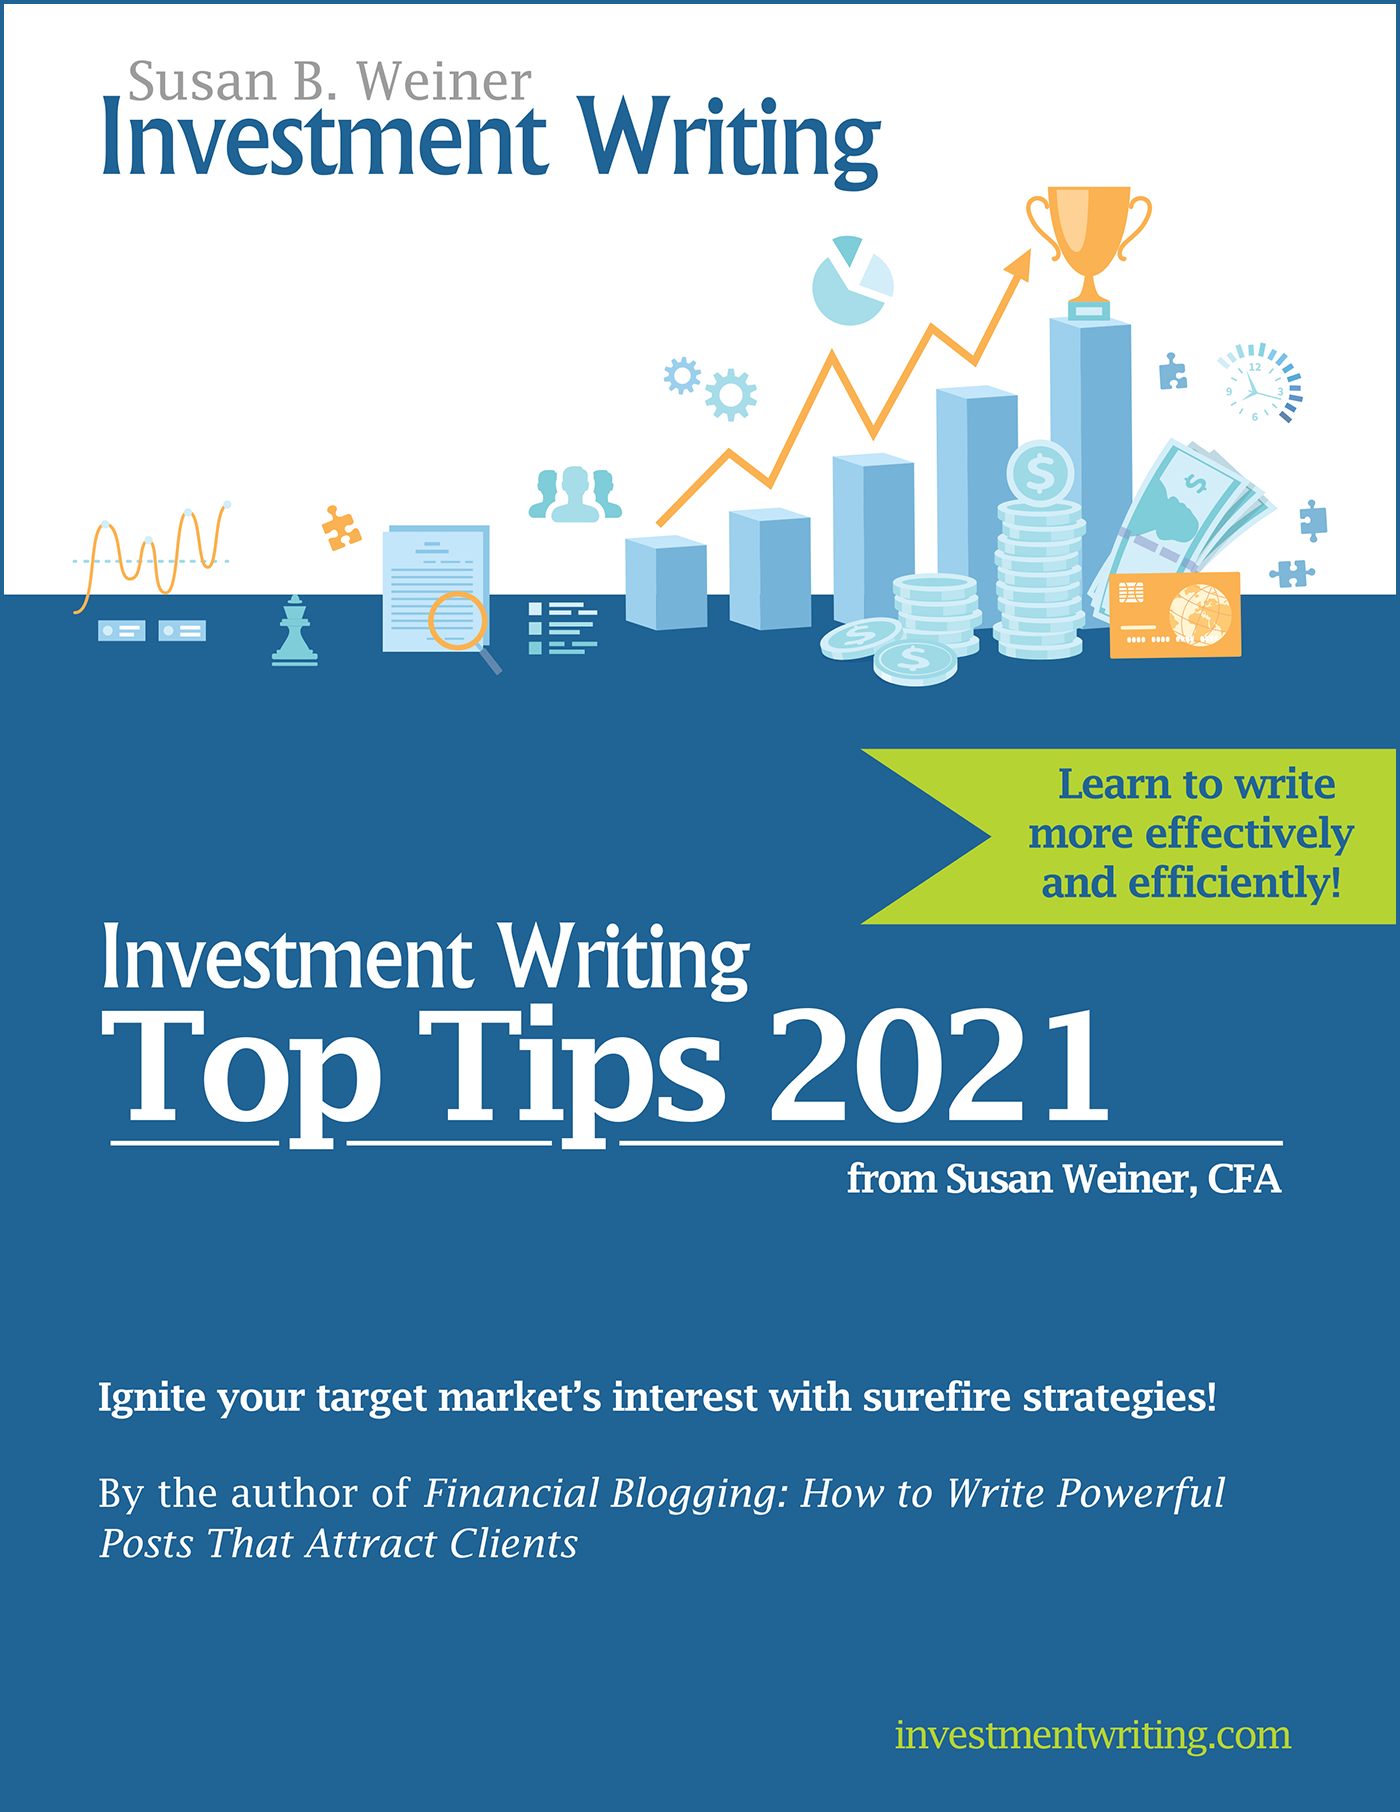 2021 Investment Writing Top Tips